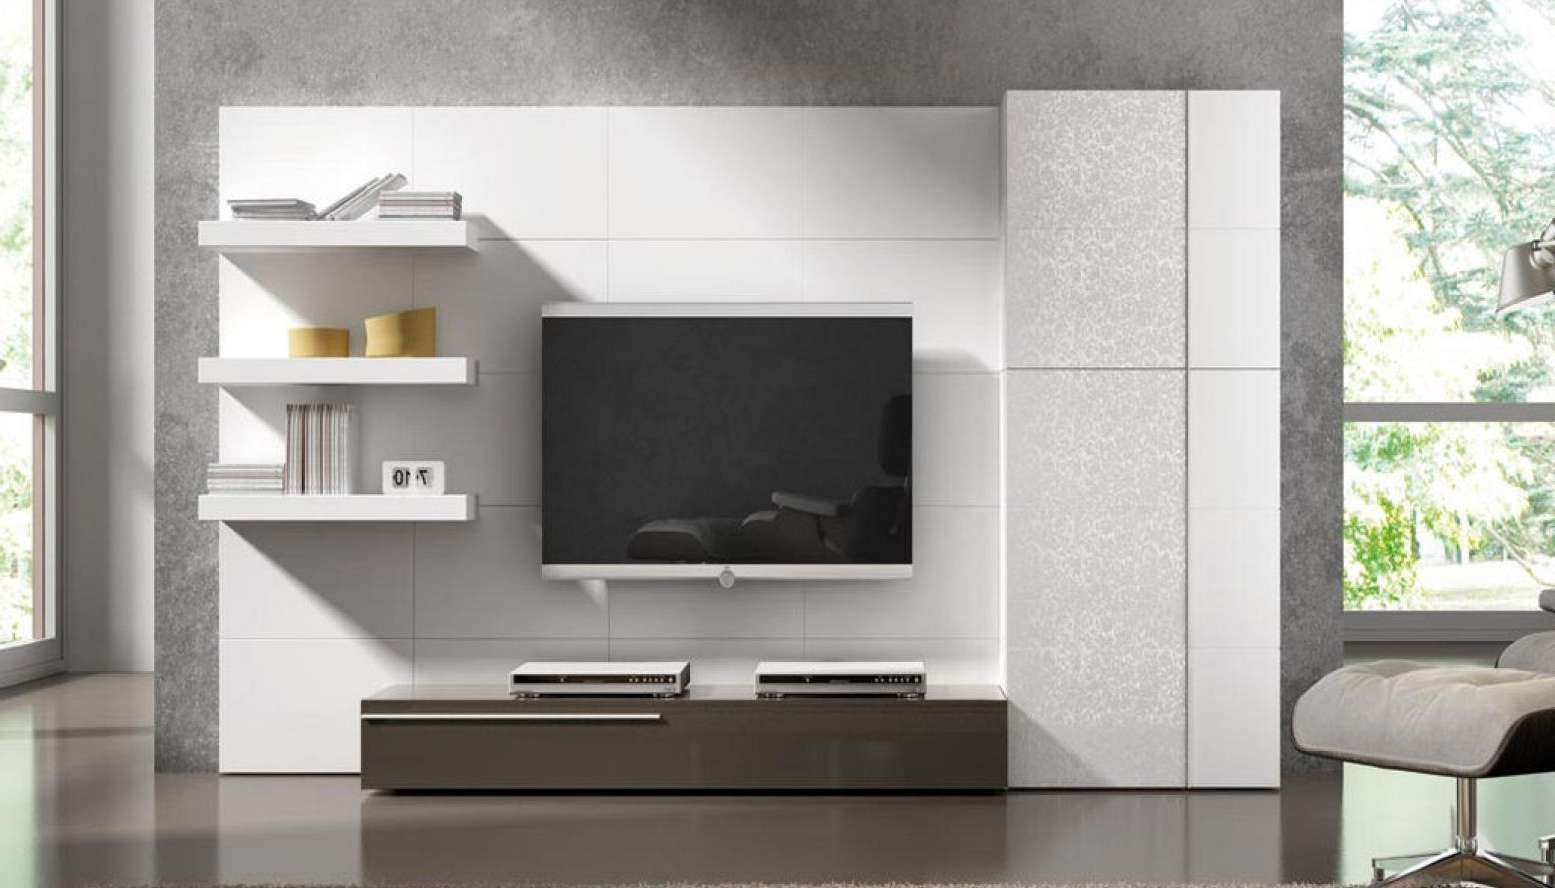 Tv : Stunning Classy Tv Stands Contemporary High Gloss Unico Wall With Regard To Classy Tv Stands (View 17 of 20)